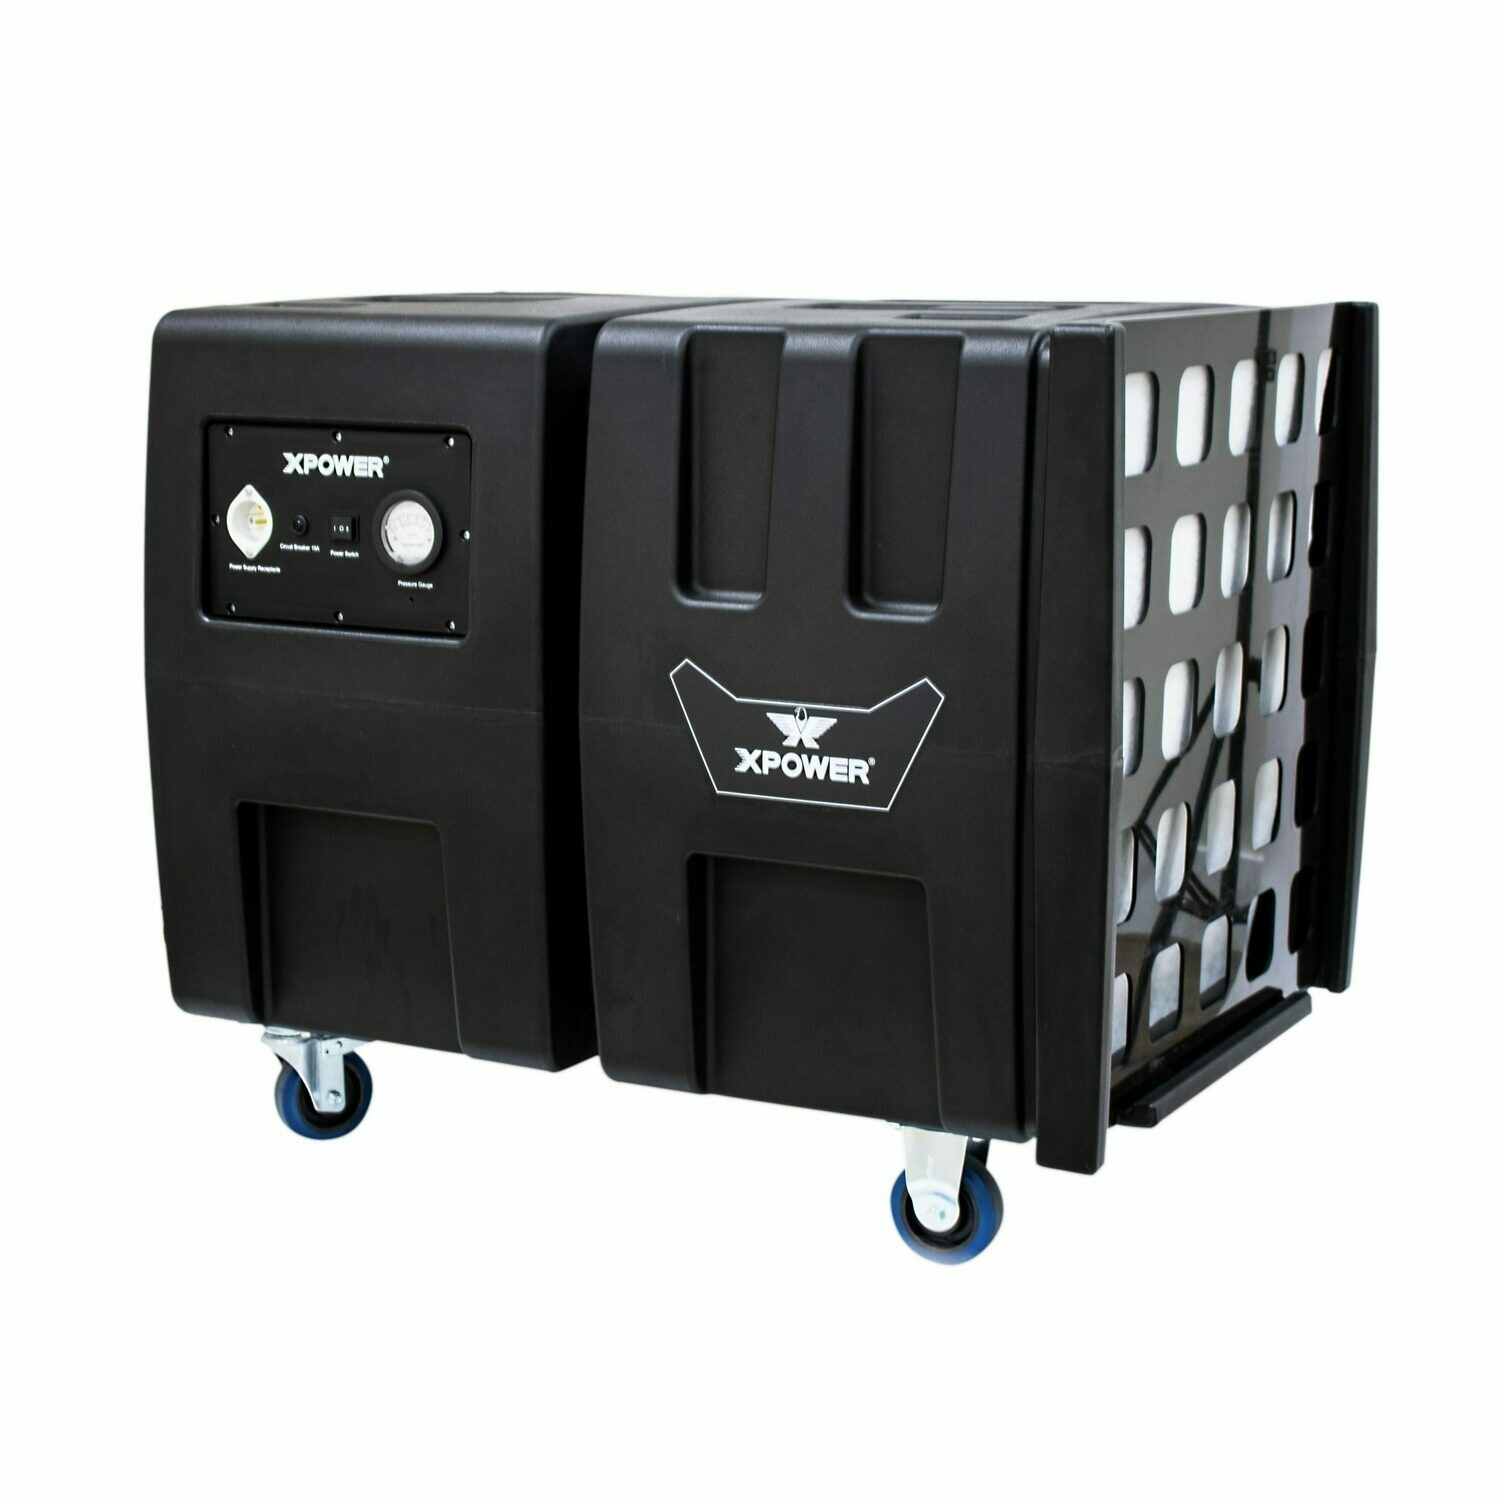 XPOWER AP-2000 Portable HEPA Air Filtration System